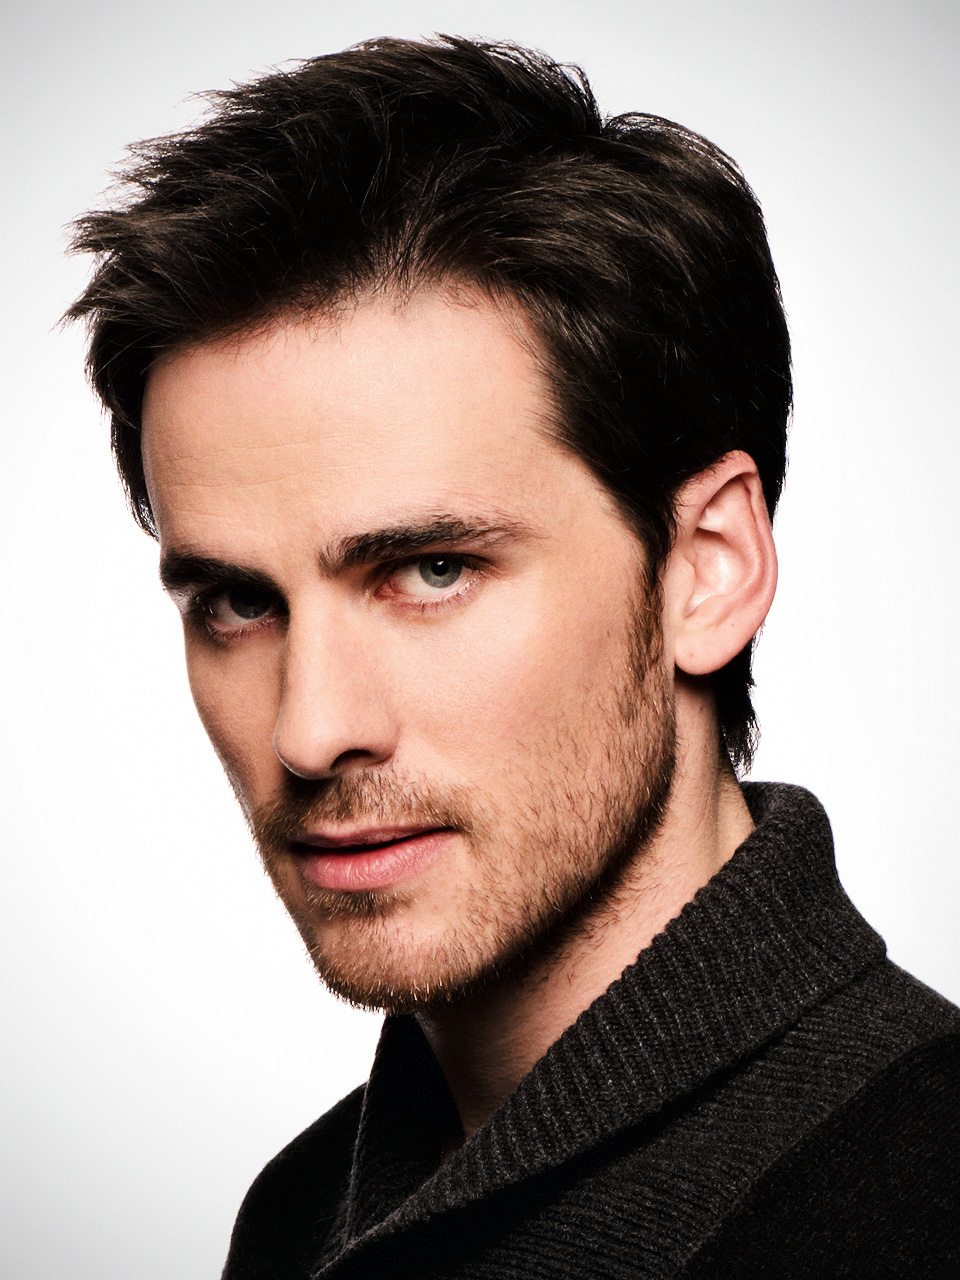 The 36-year old son of father (?) and mother(?), 178 cm tall Colin O'Donoghue in 2017 photo